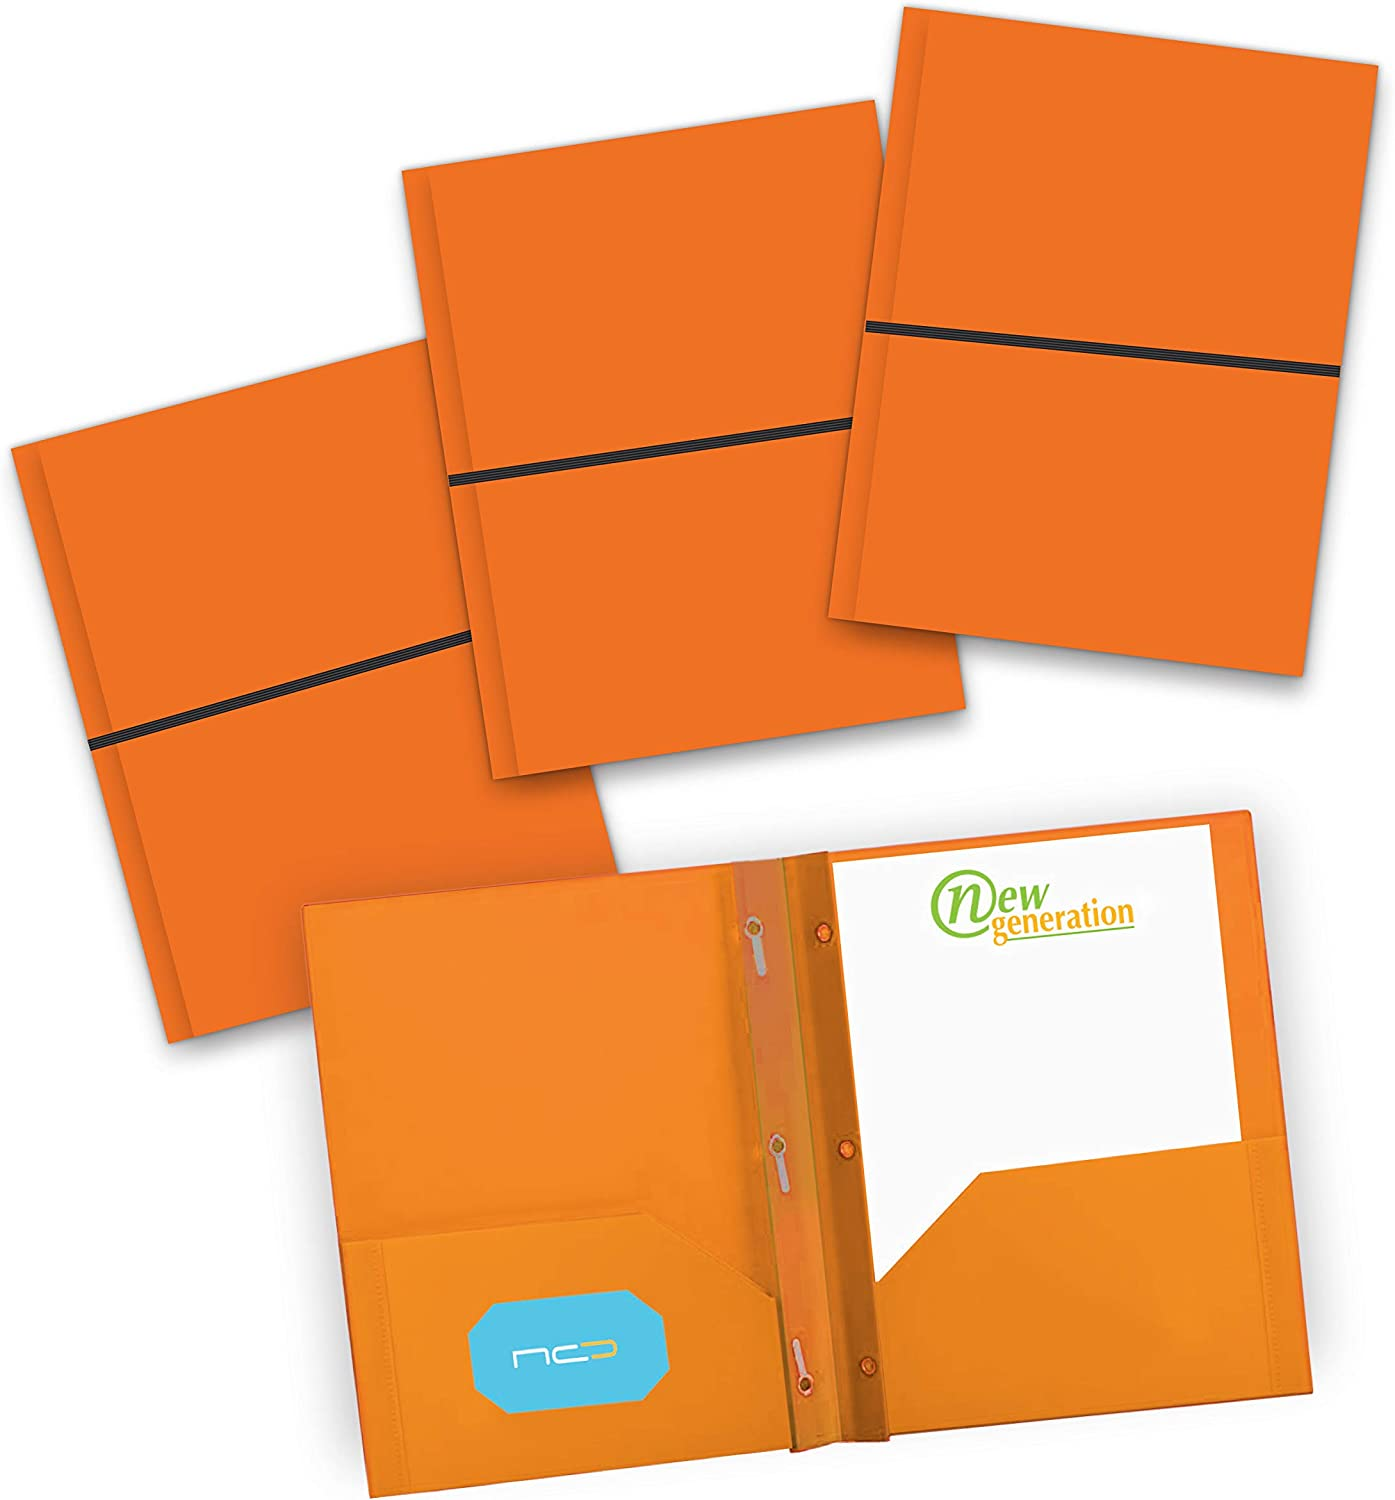 NEW GENERATION - 3 Prongs 2 Pocket Plastic Folders, Durable Heavy Duty Letter Size School Poly Portfolio with Elastic Band Closure and Business Card Slot, Use at Office or Storage – 3 Pack (Orange)